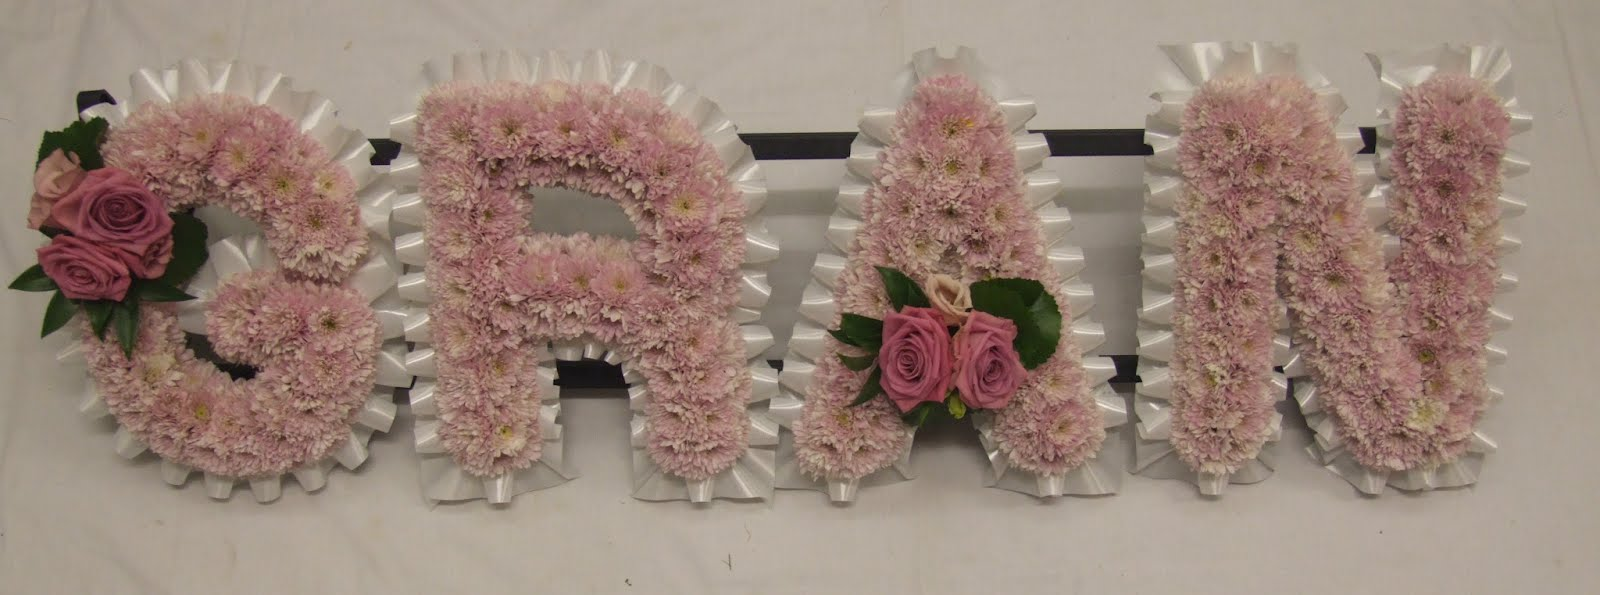 Rjs florist funeral flowers gates of heaven with a red rose spray izmirmasajfo